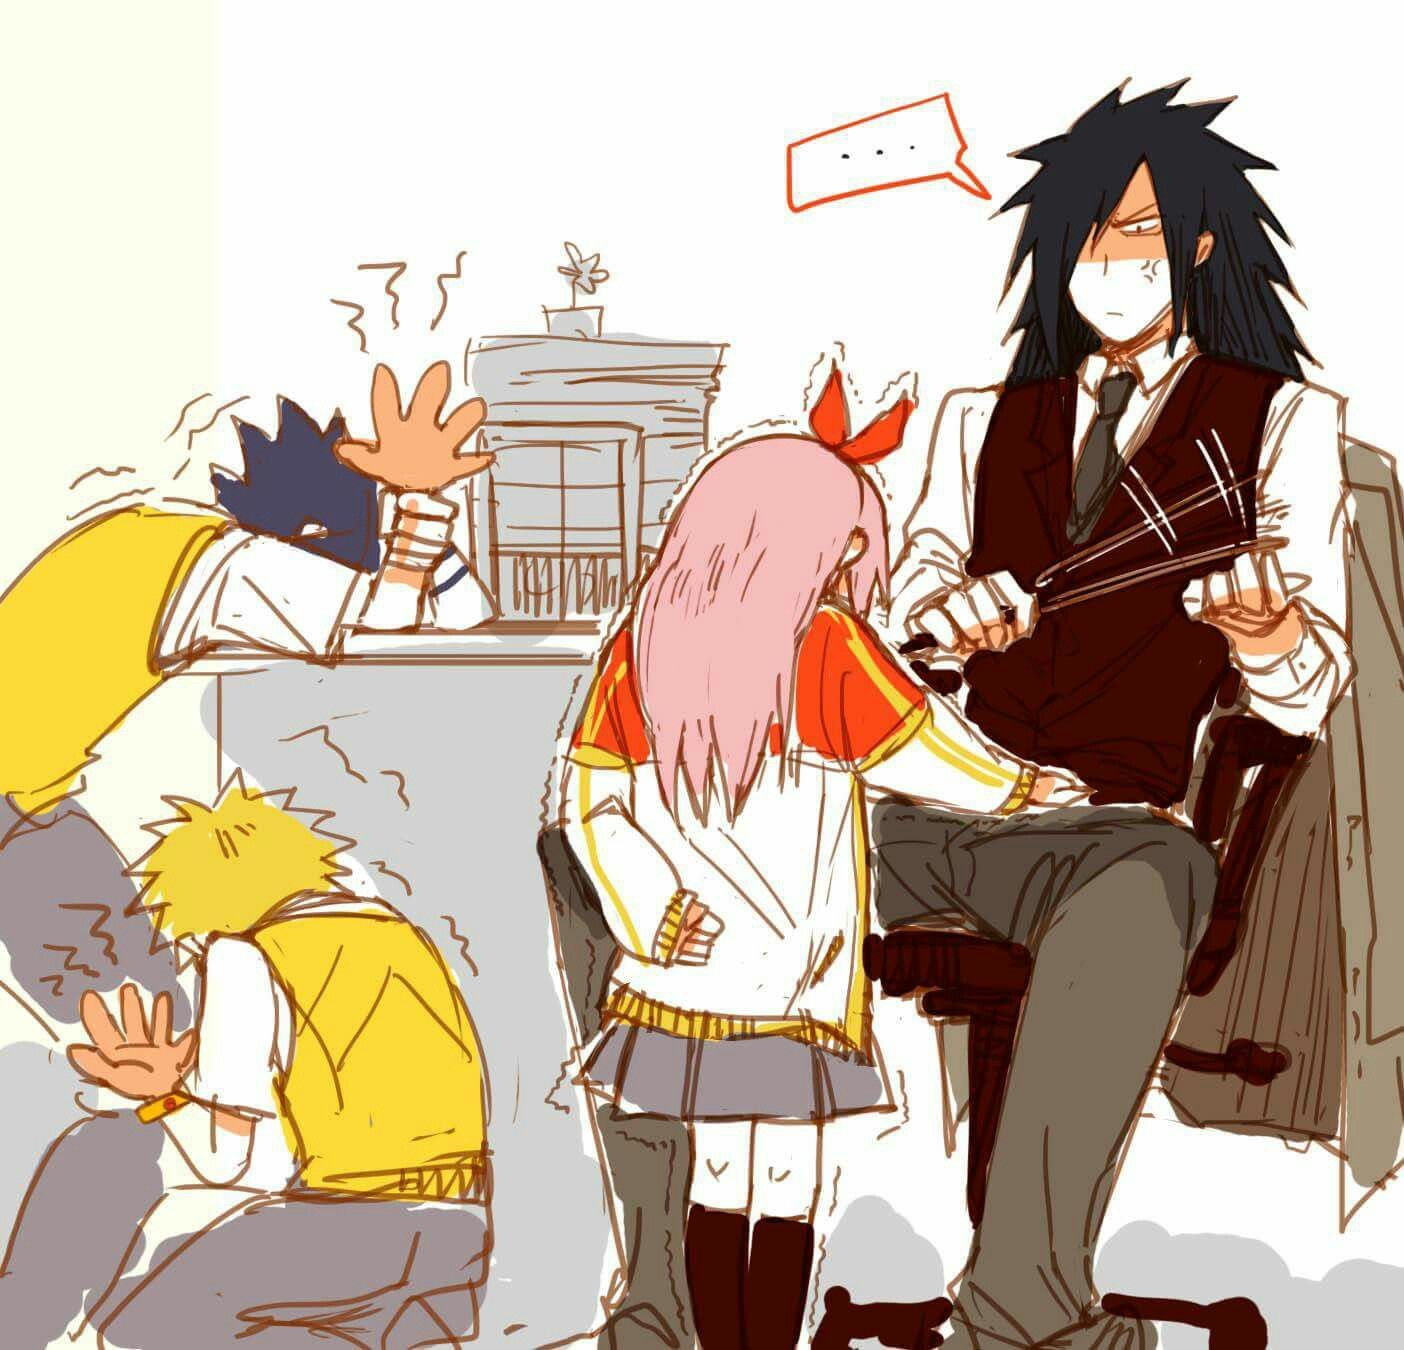 Team 7 in school  and madara is the teacher -2